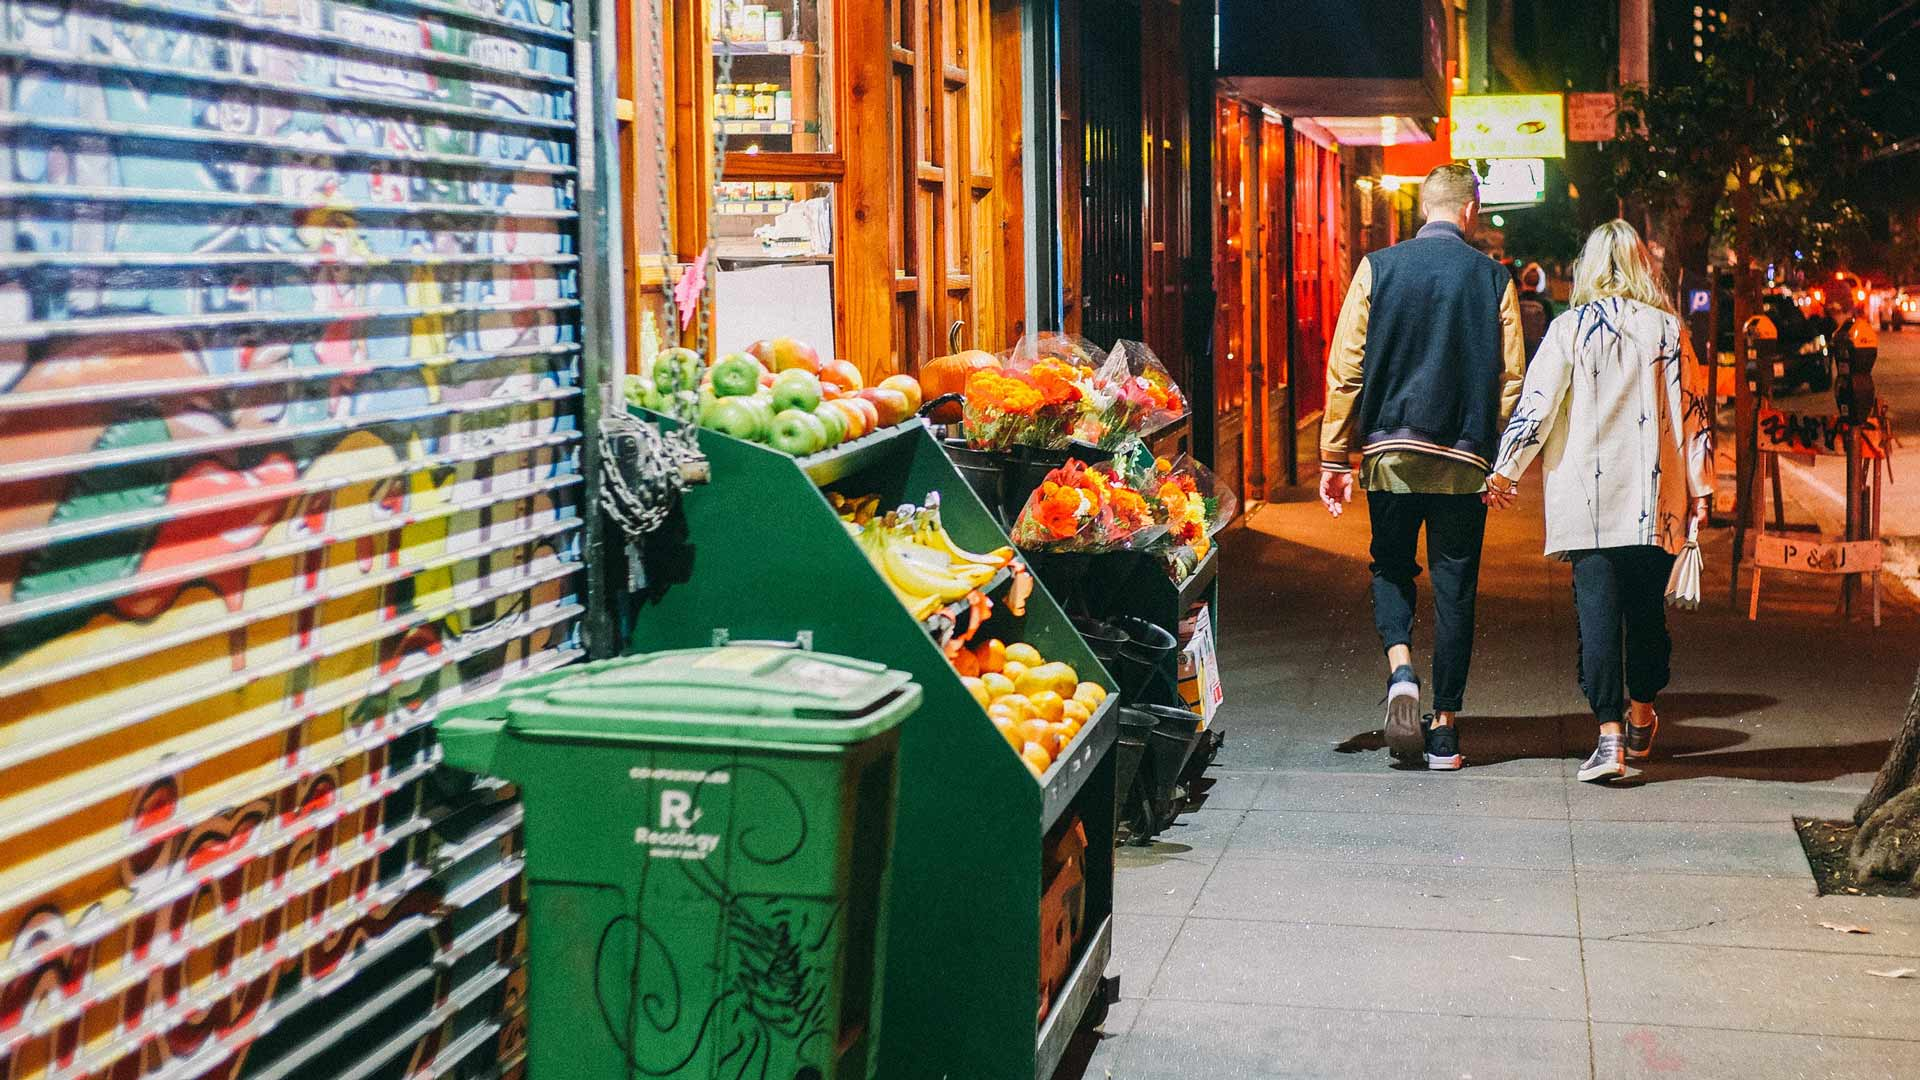 Hundreds of Melbourne Homes Might Soon be Getting Free Food Waste Bins